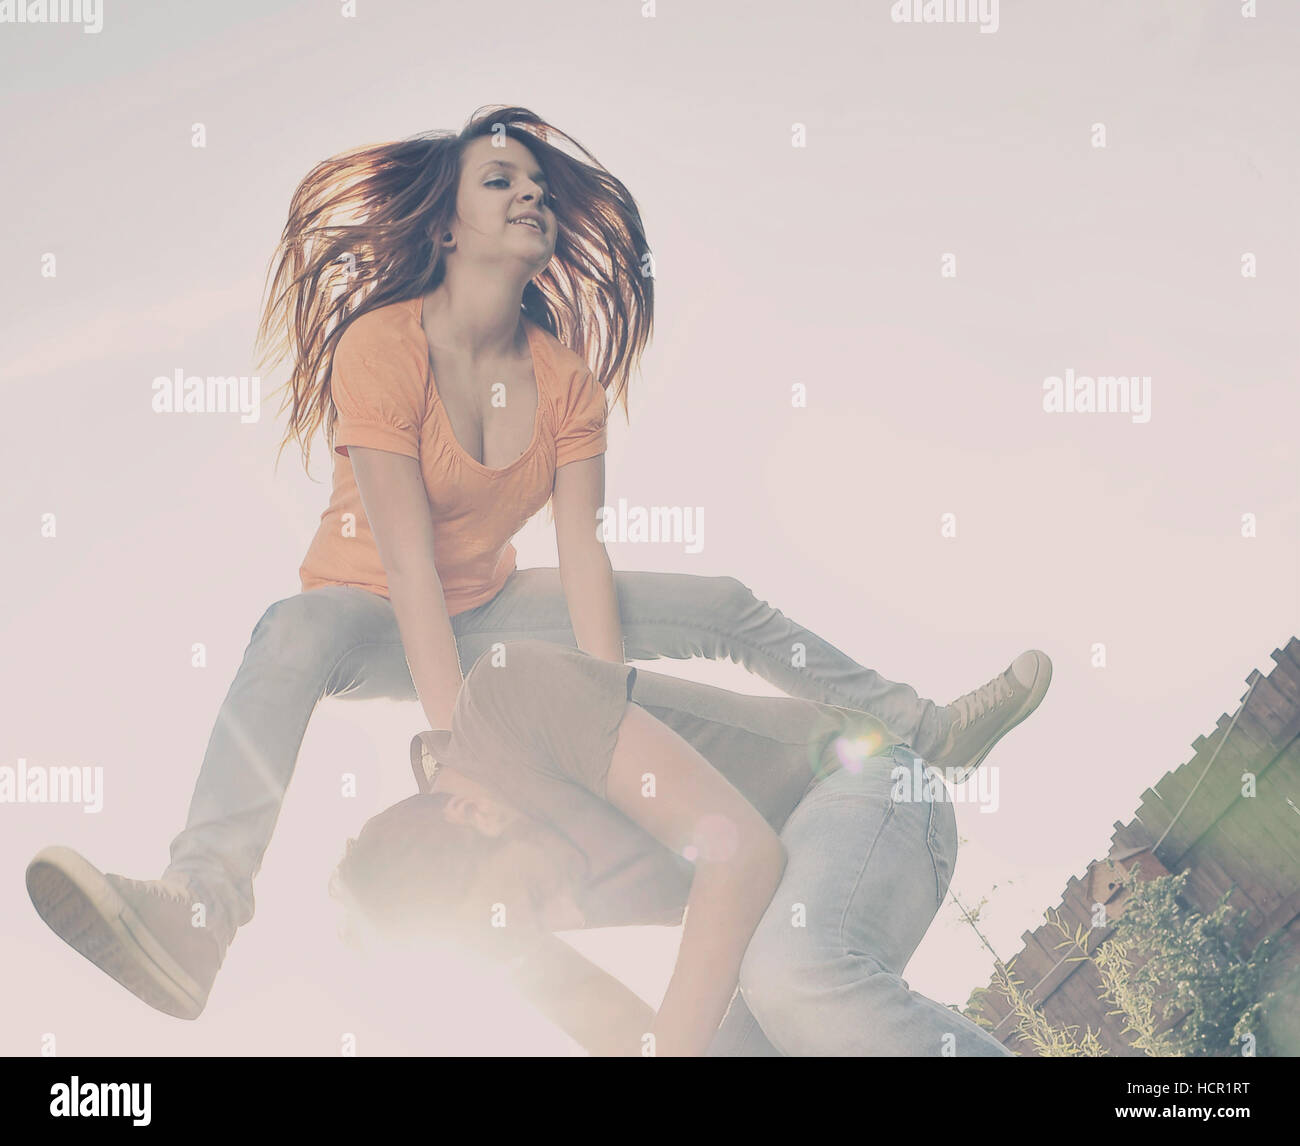 Happy woman excited jumping over a man - Stock Image